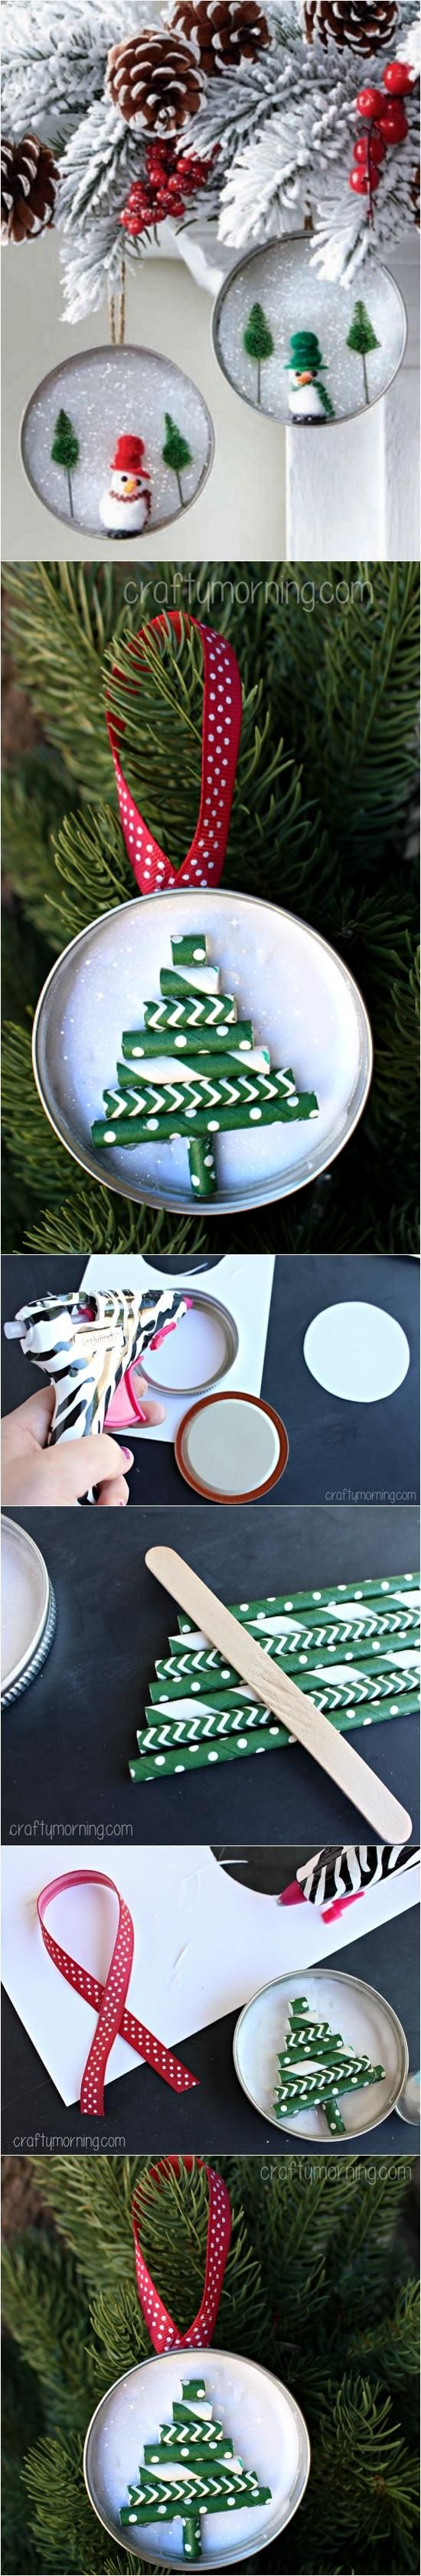 Mason Jar Lid Ornament (Straw Christmas Tree) | DIY Crafts Club